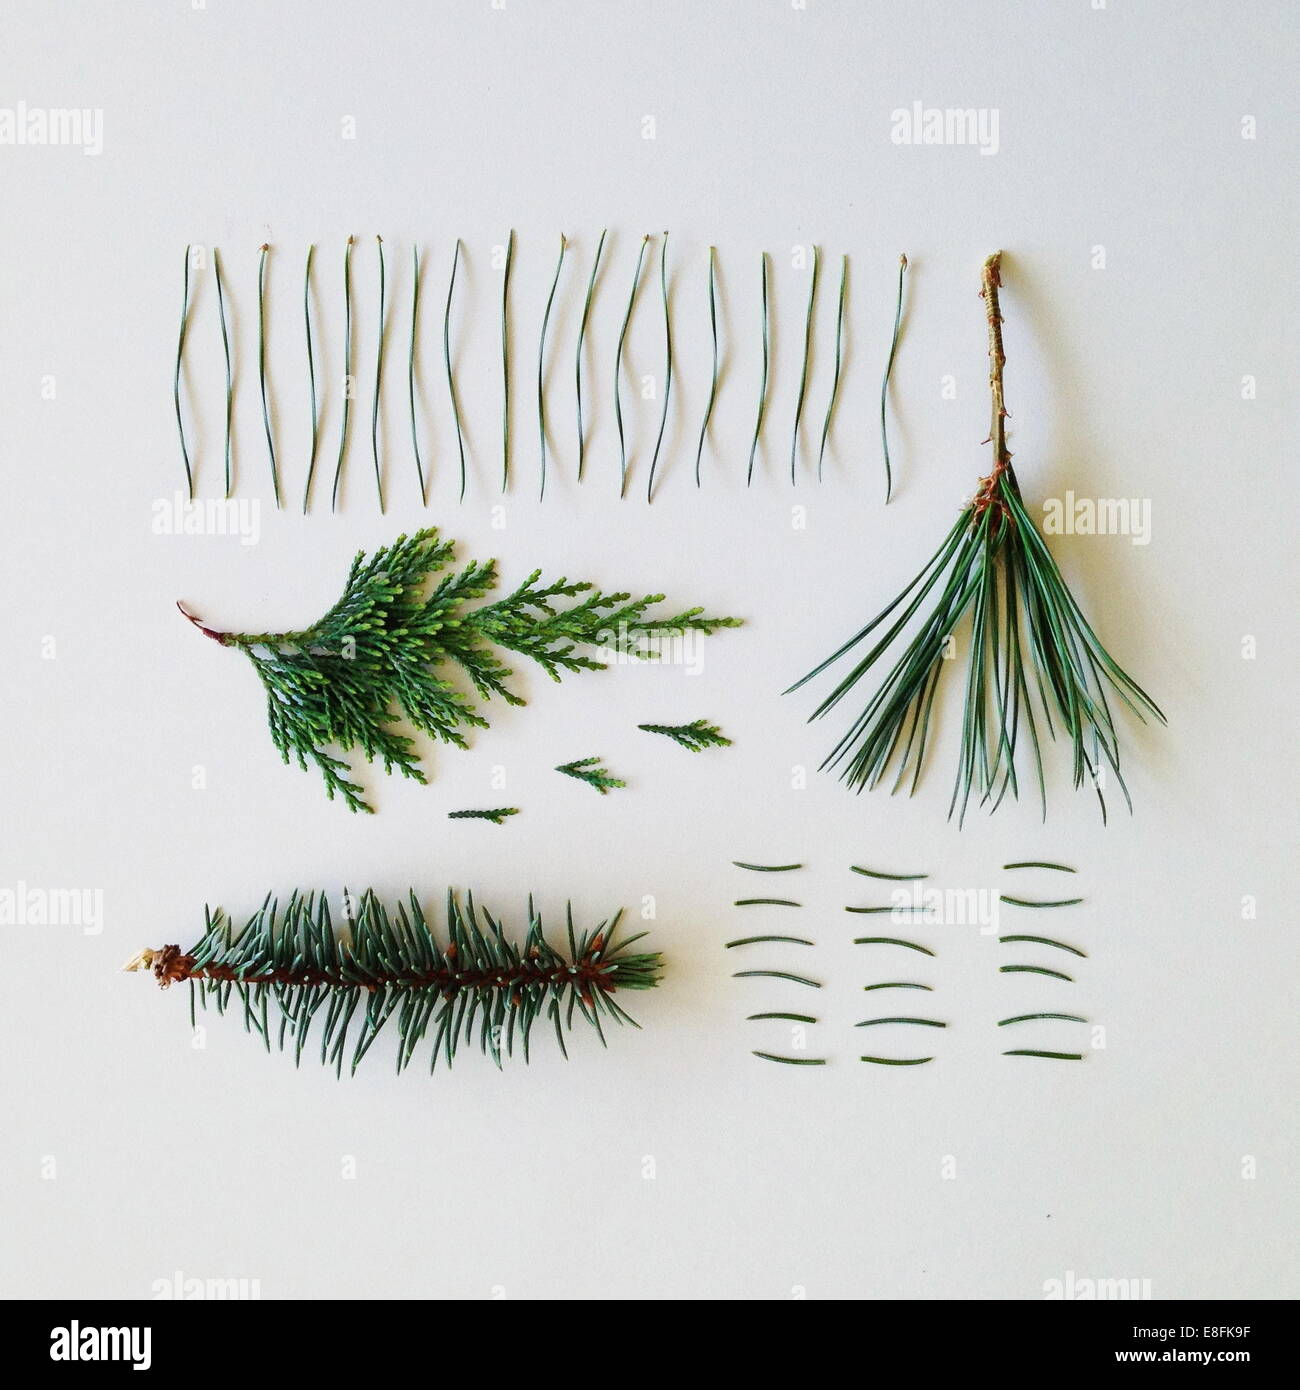 Pine tree branches and needles - Stock Image